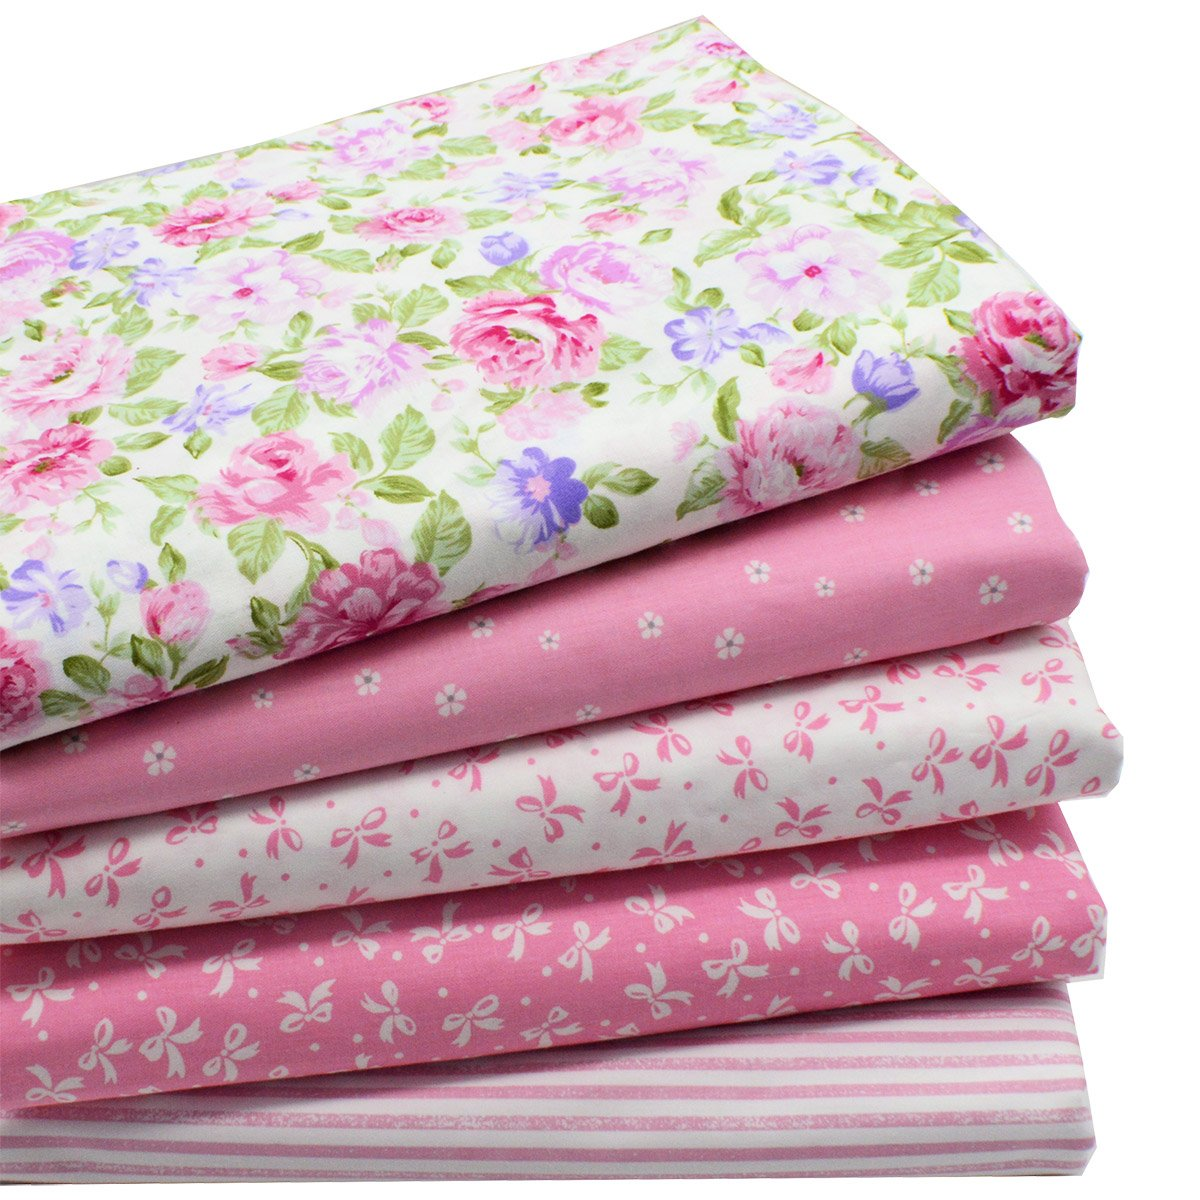 iNee Pink Fat Quarters Quilting Fabric Bundles for Quilting Sewing Crafting,18 x 22 18 x 22 4336921013